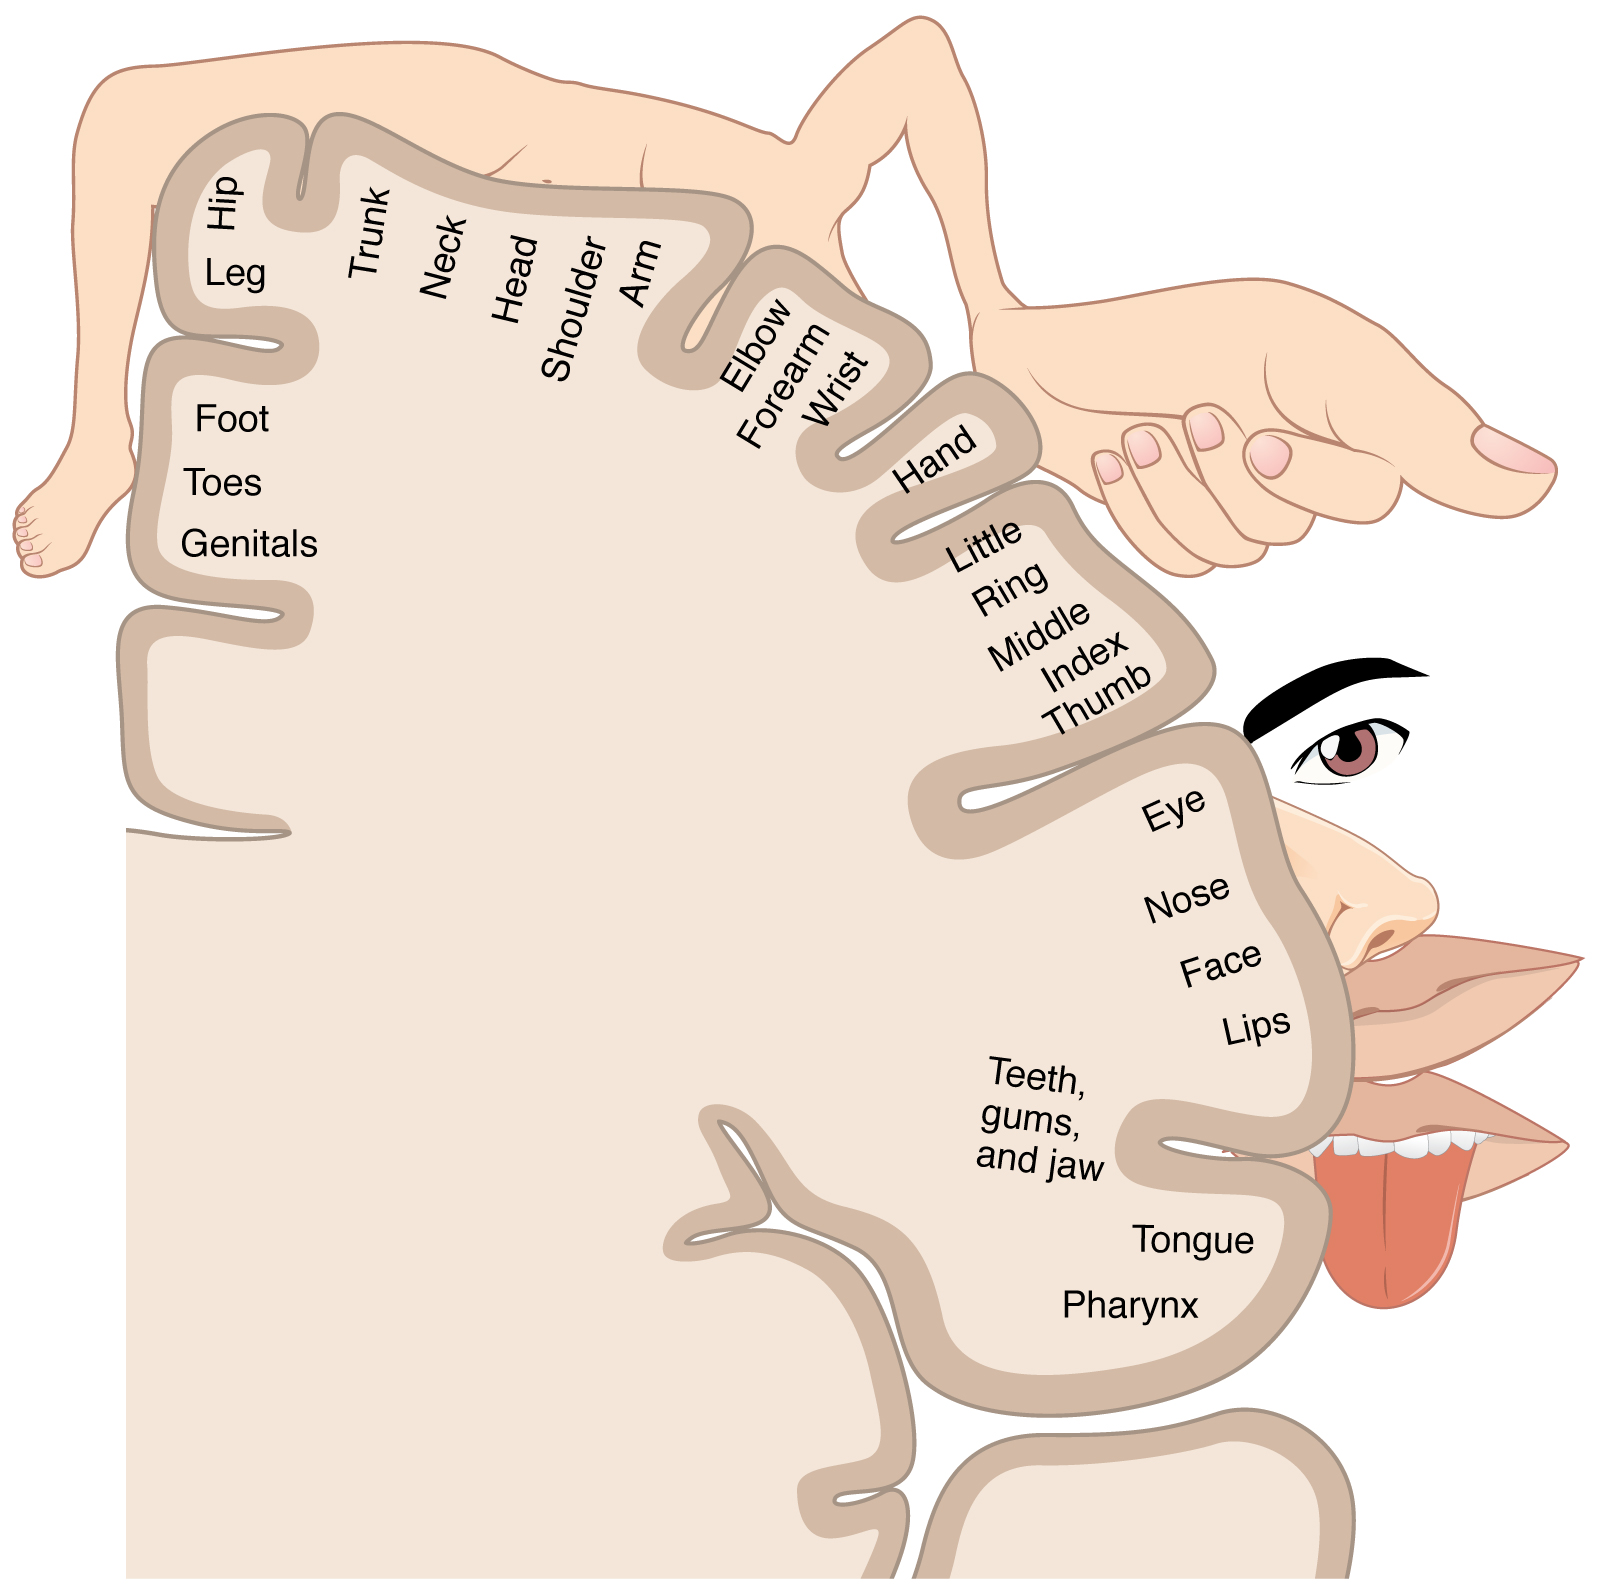 https://upload.wikimedia.org/wikipedia/commons/c/c4/1421_Sensory_Homunculus.jpg